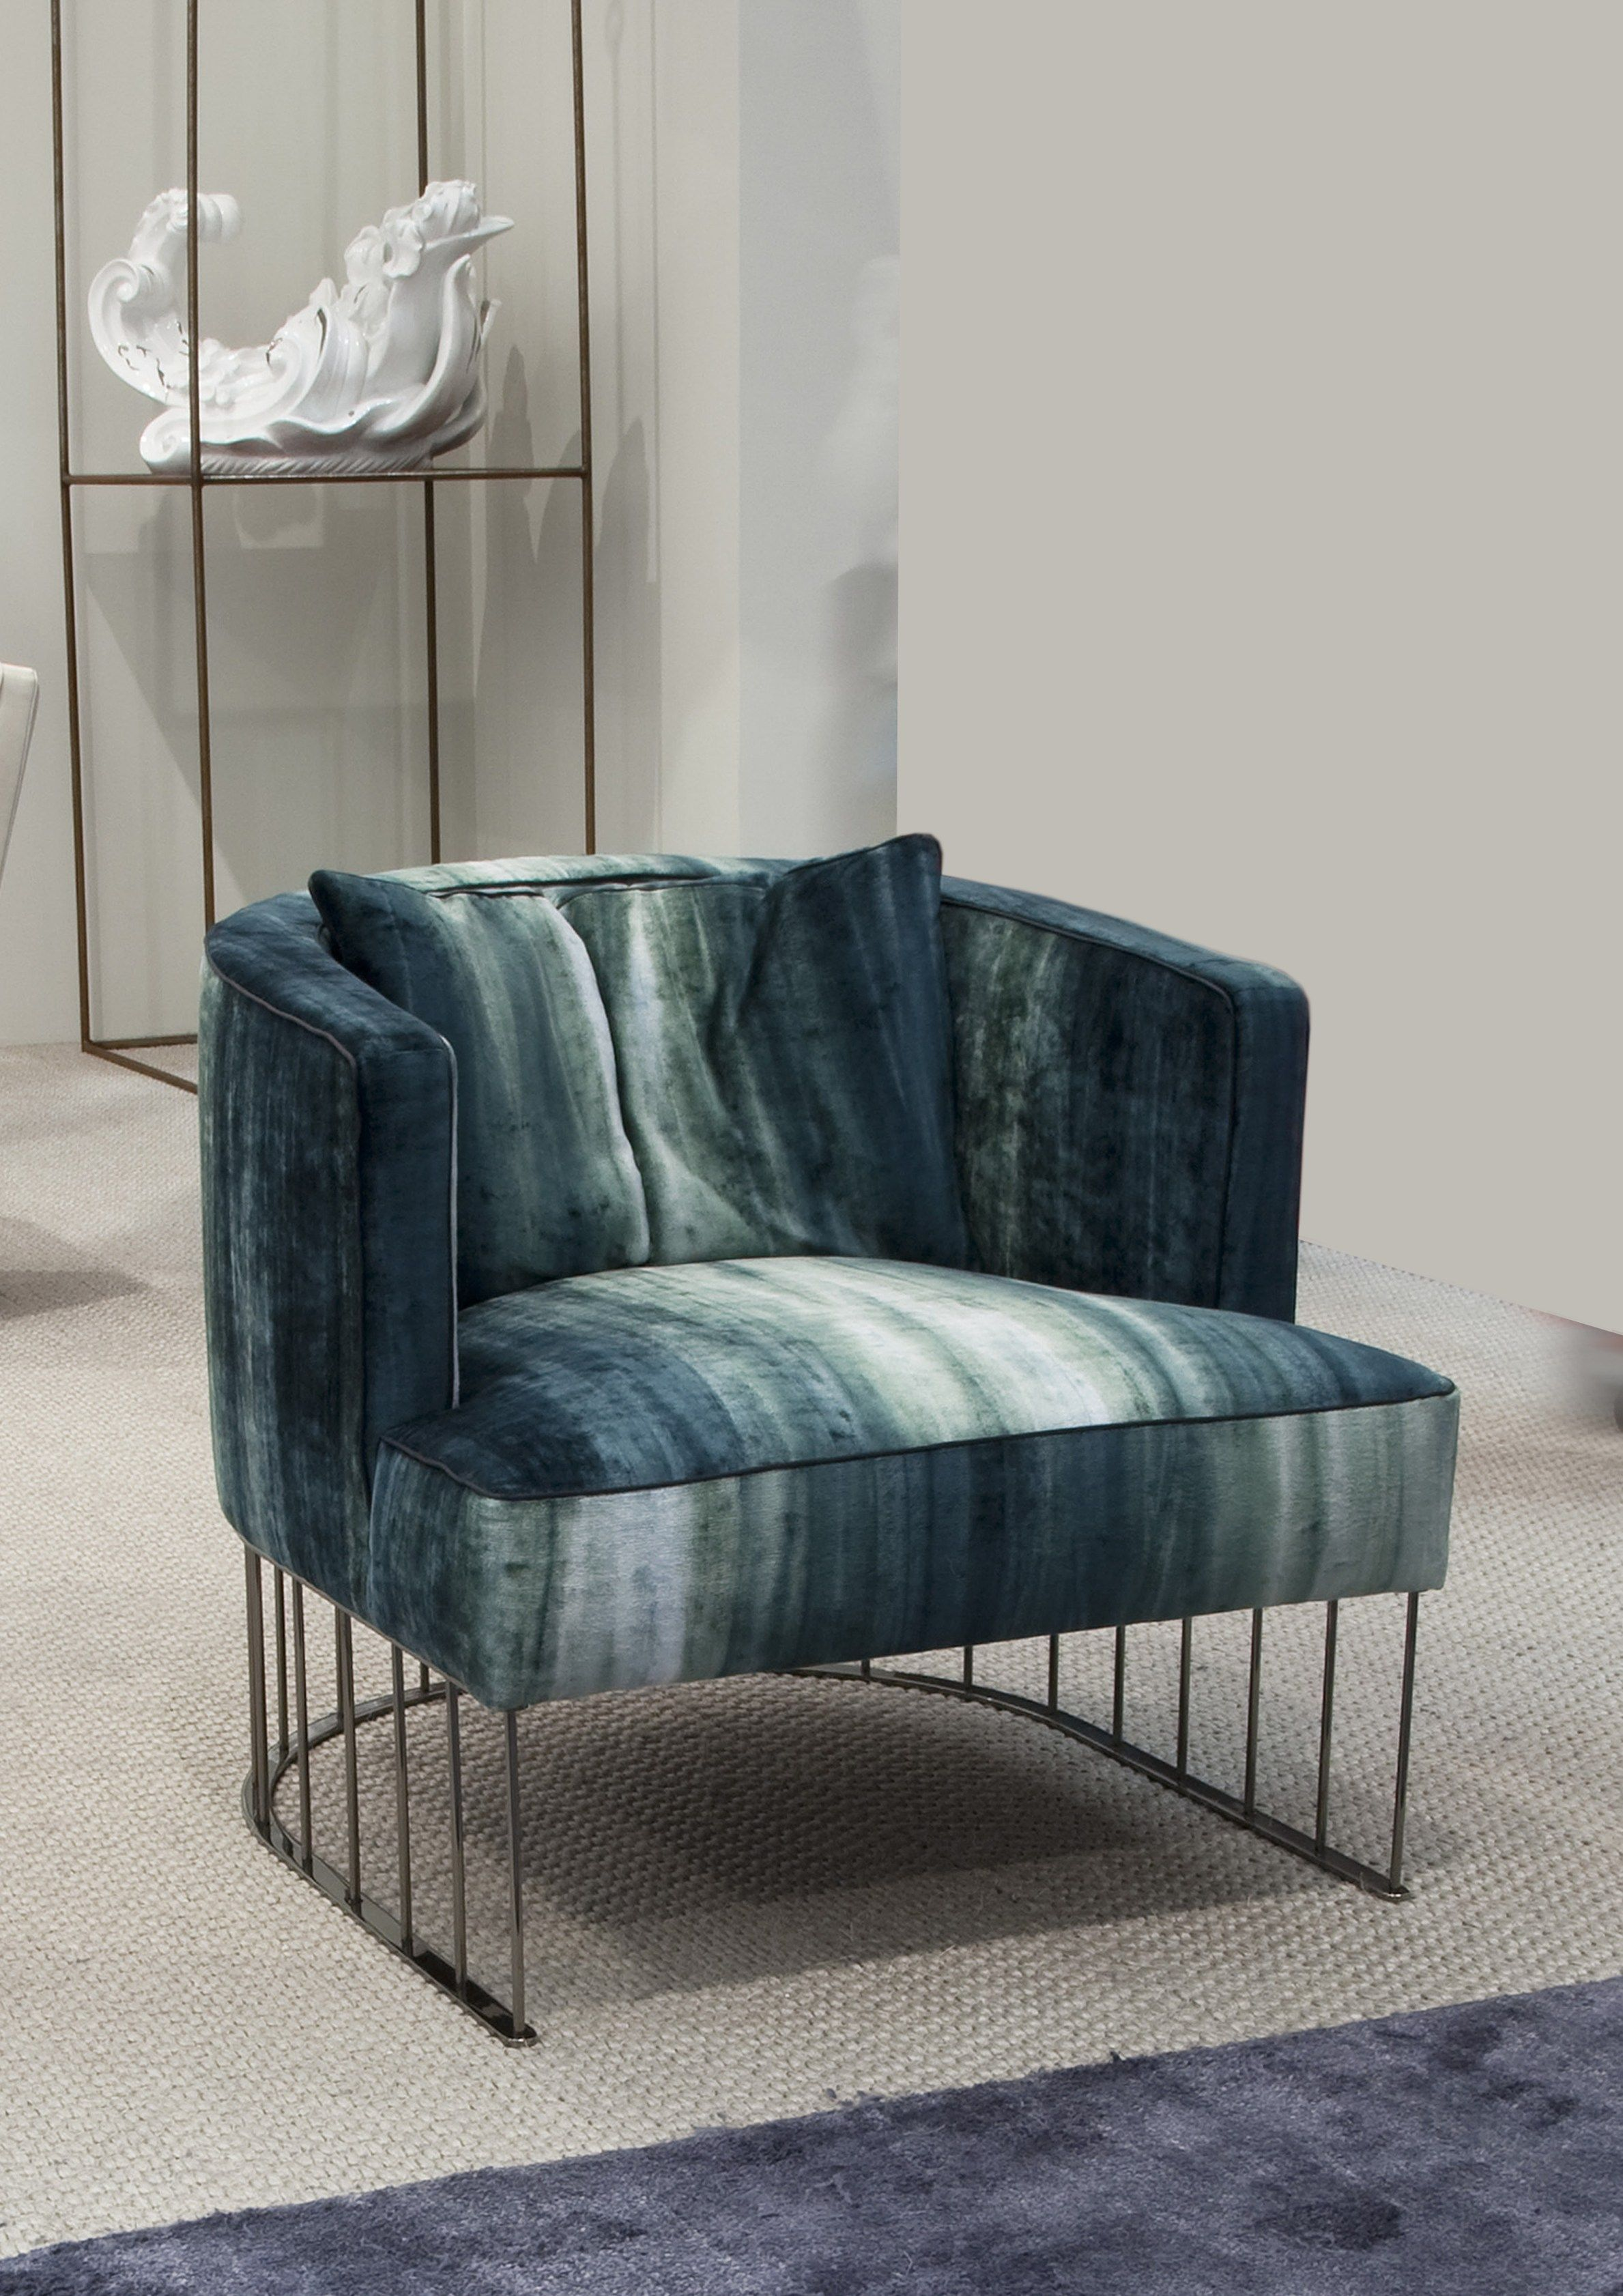 Pin on seating sofas daybeds